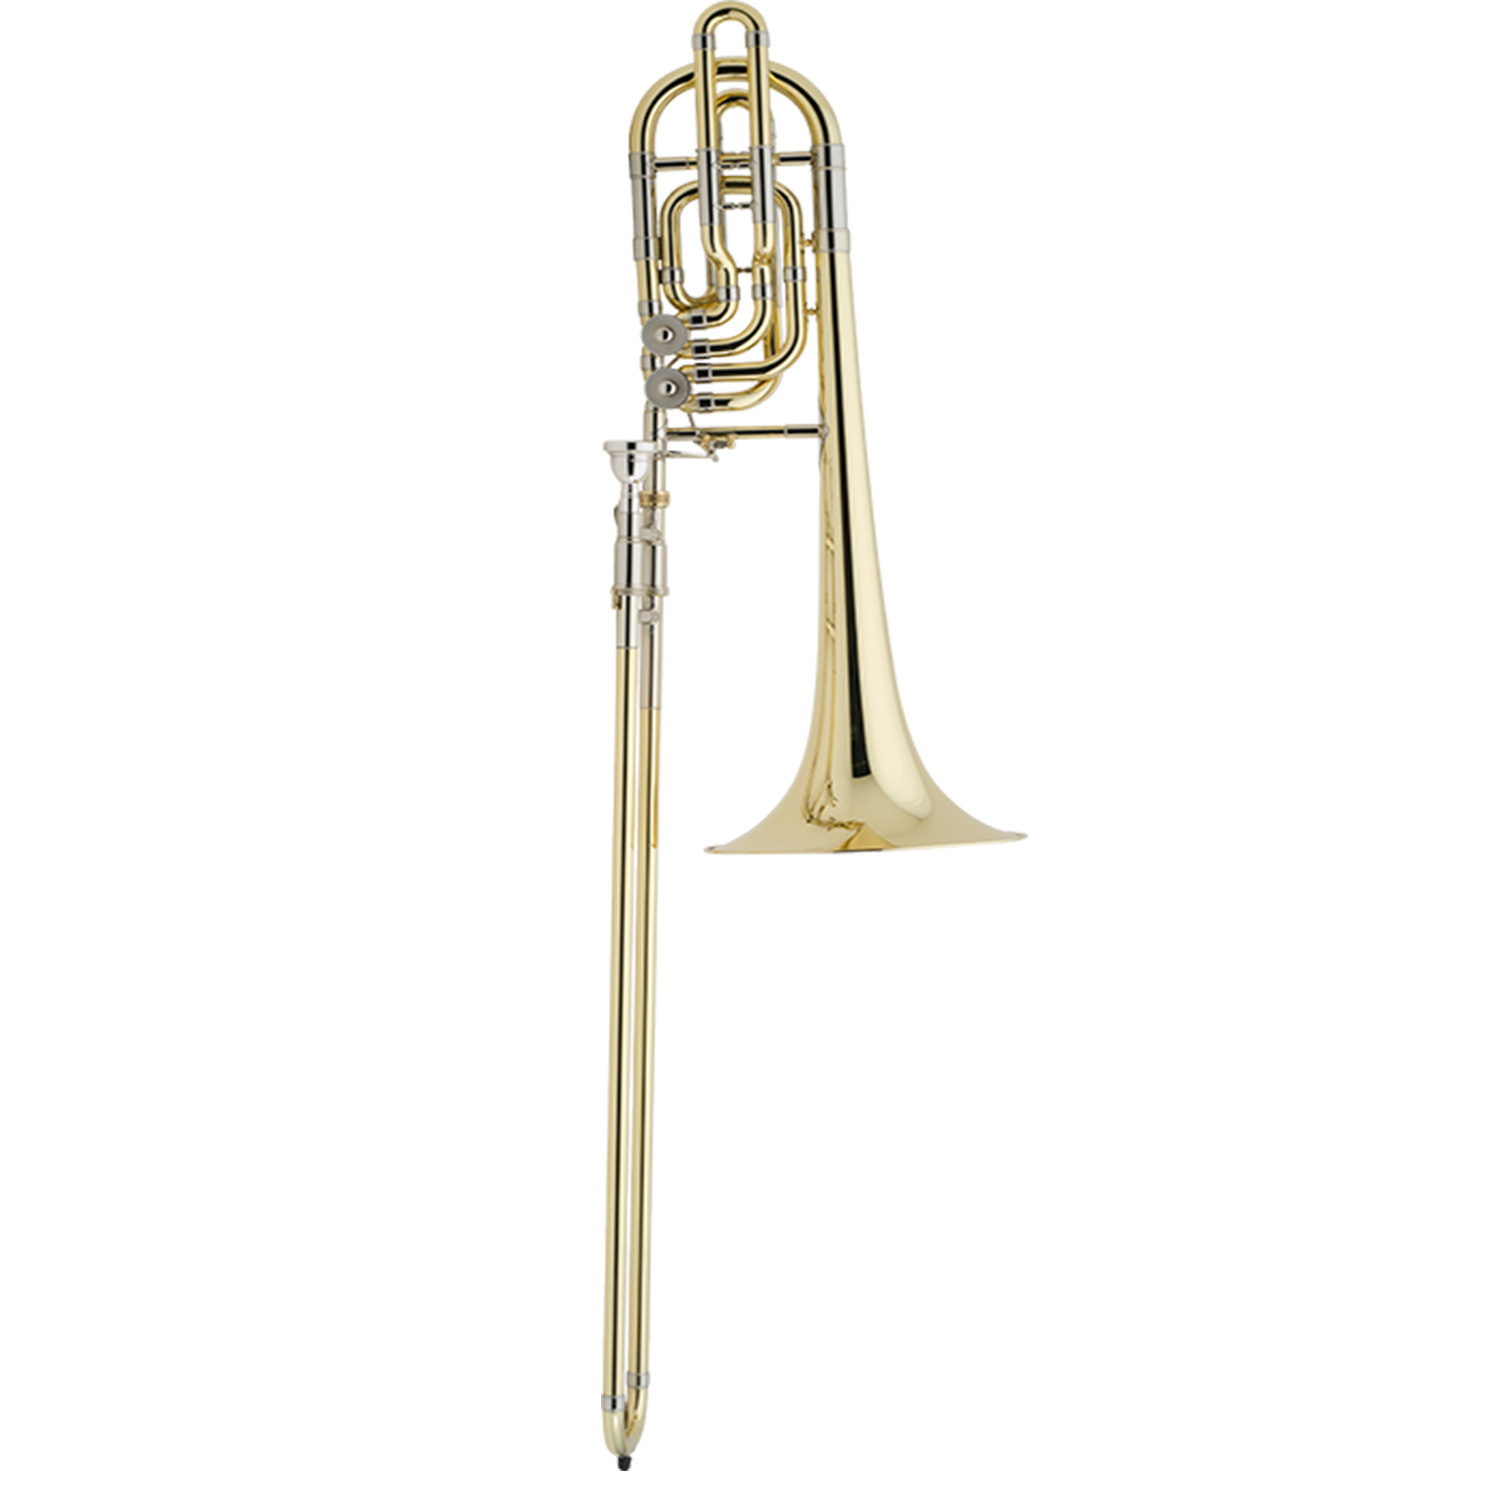 Bach Stradivarius 50B3 Bass Trombone - Independent Double Rotor System